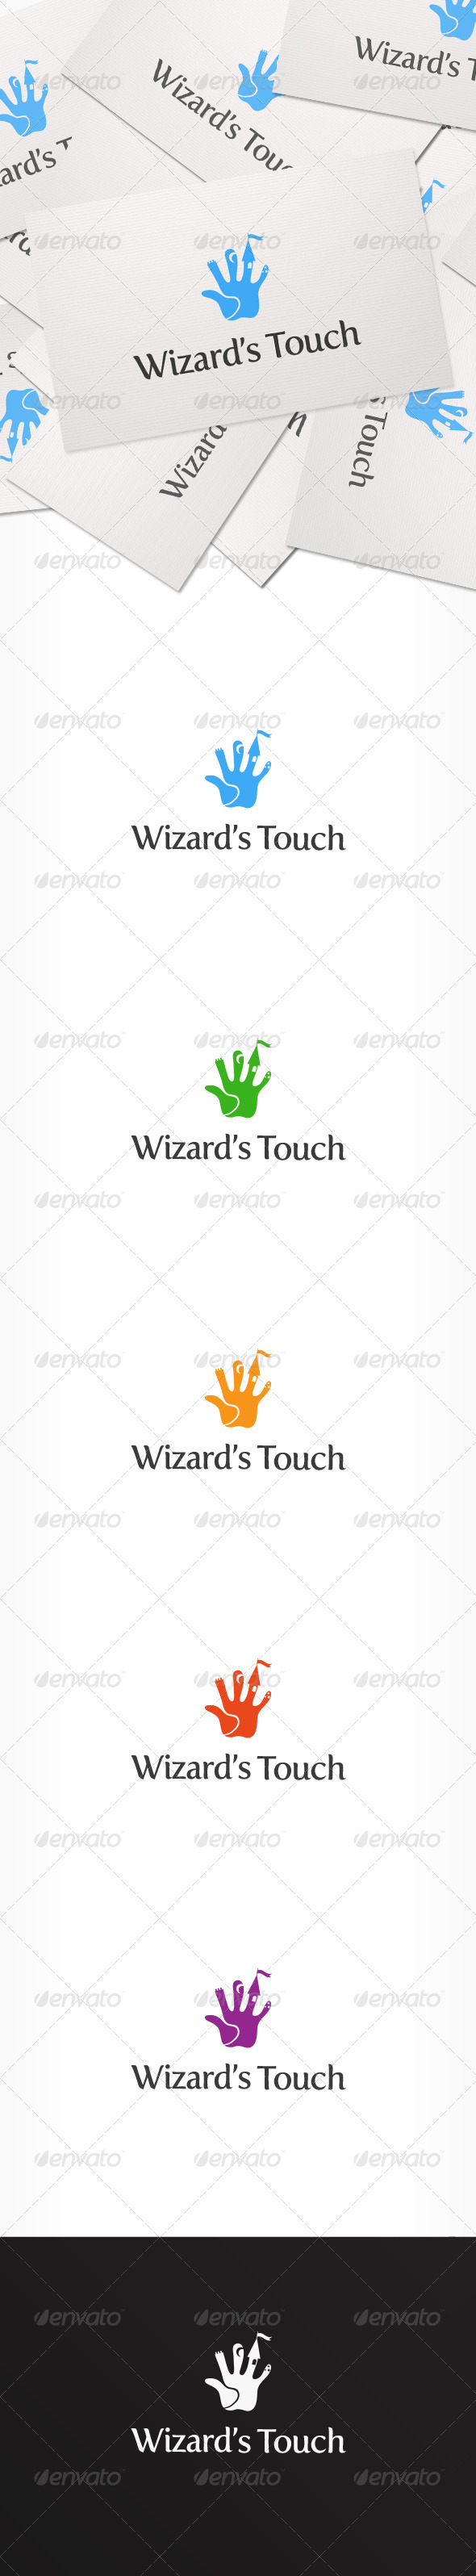 GraphicRiver Wizard's Touch Logo 3933080